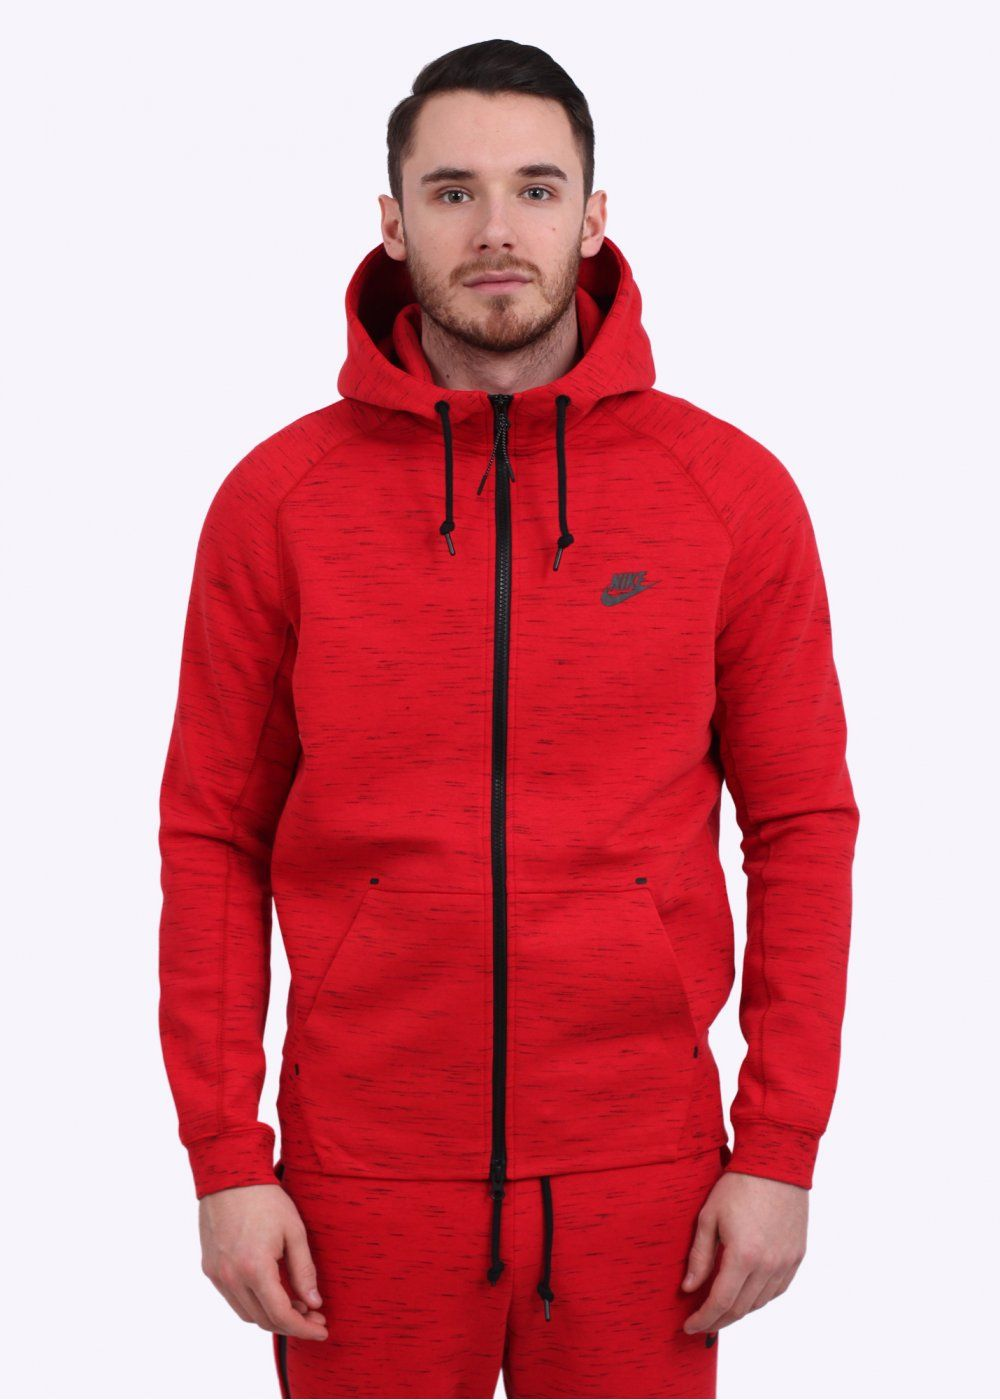 Nike Apparel AW77 Tech Fleece Hoodie Tech fleece hoodie